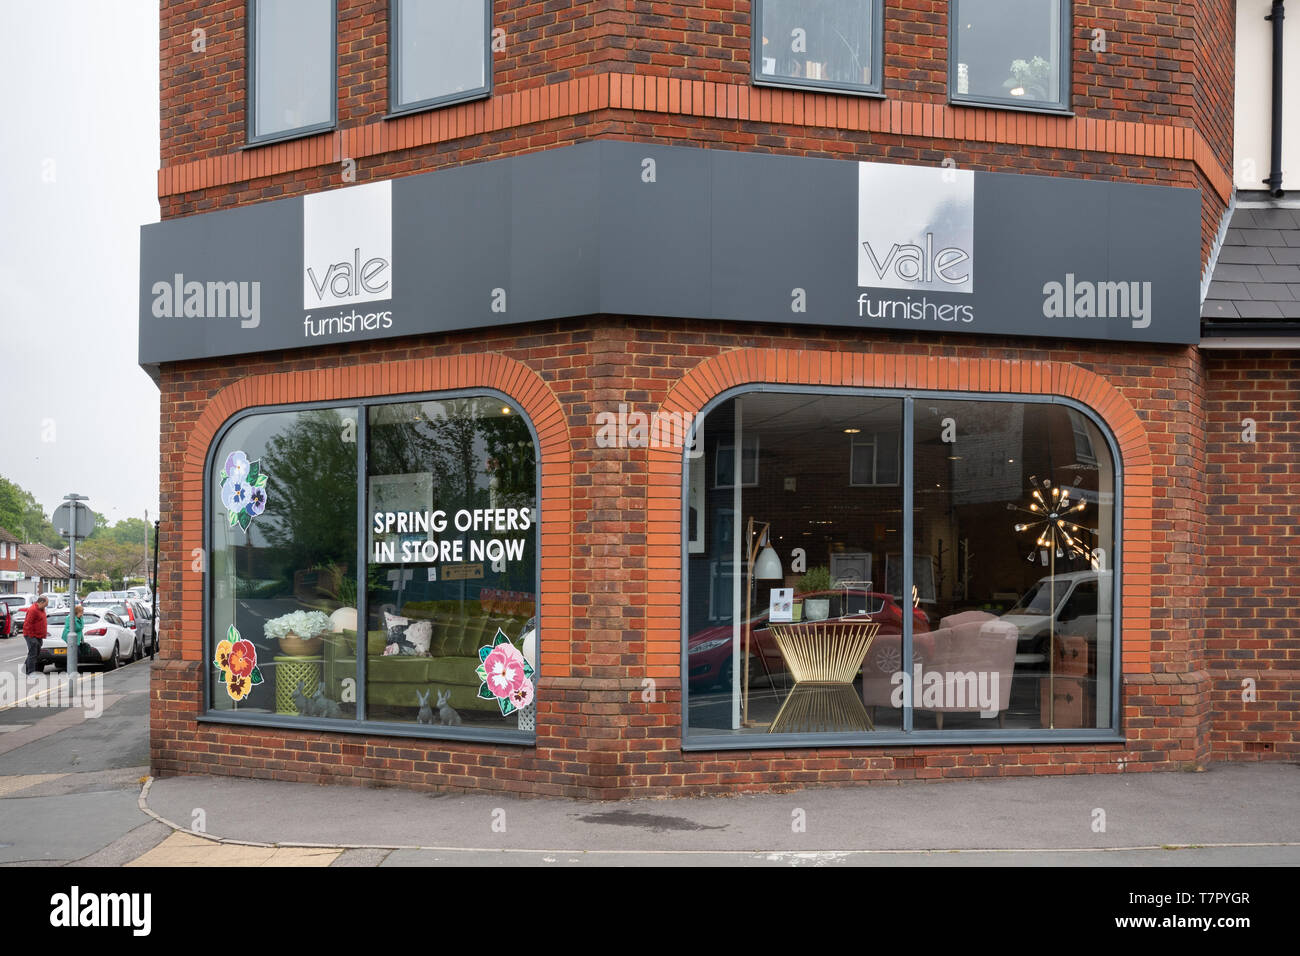 Vale Furnishers shop, one of the largest furniture showrooms in the area, in Ash Vale in Surrey, UK - Stock Image